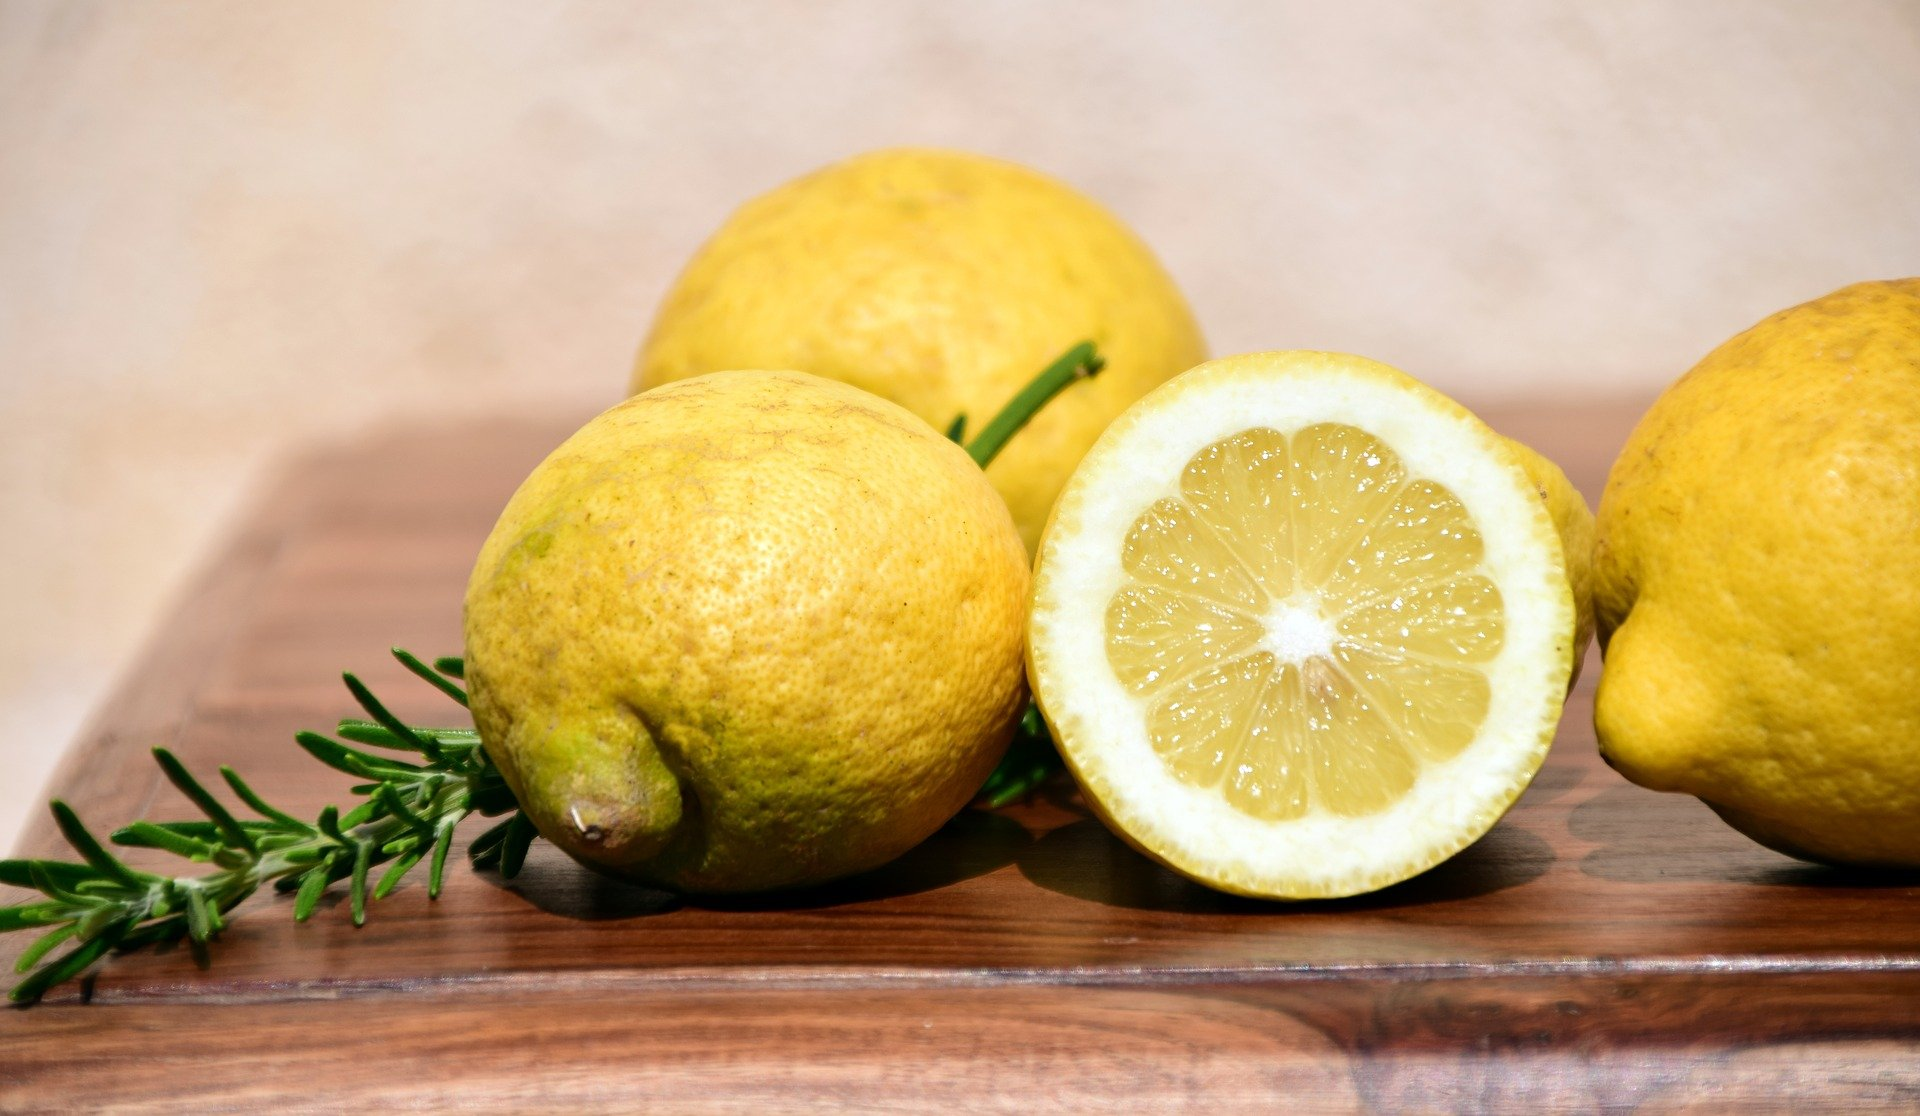 Some lemons with a sprig of rosemary on a chopping board | Photo: Pixabay/Ulrike Leone